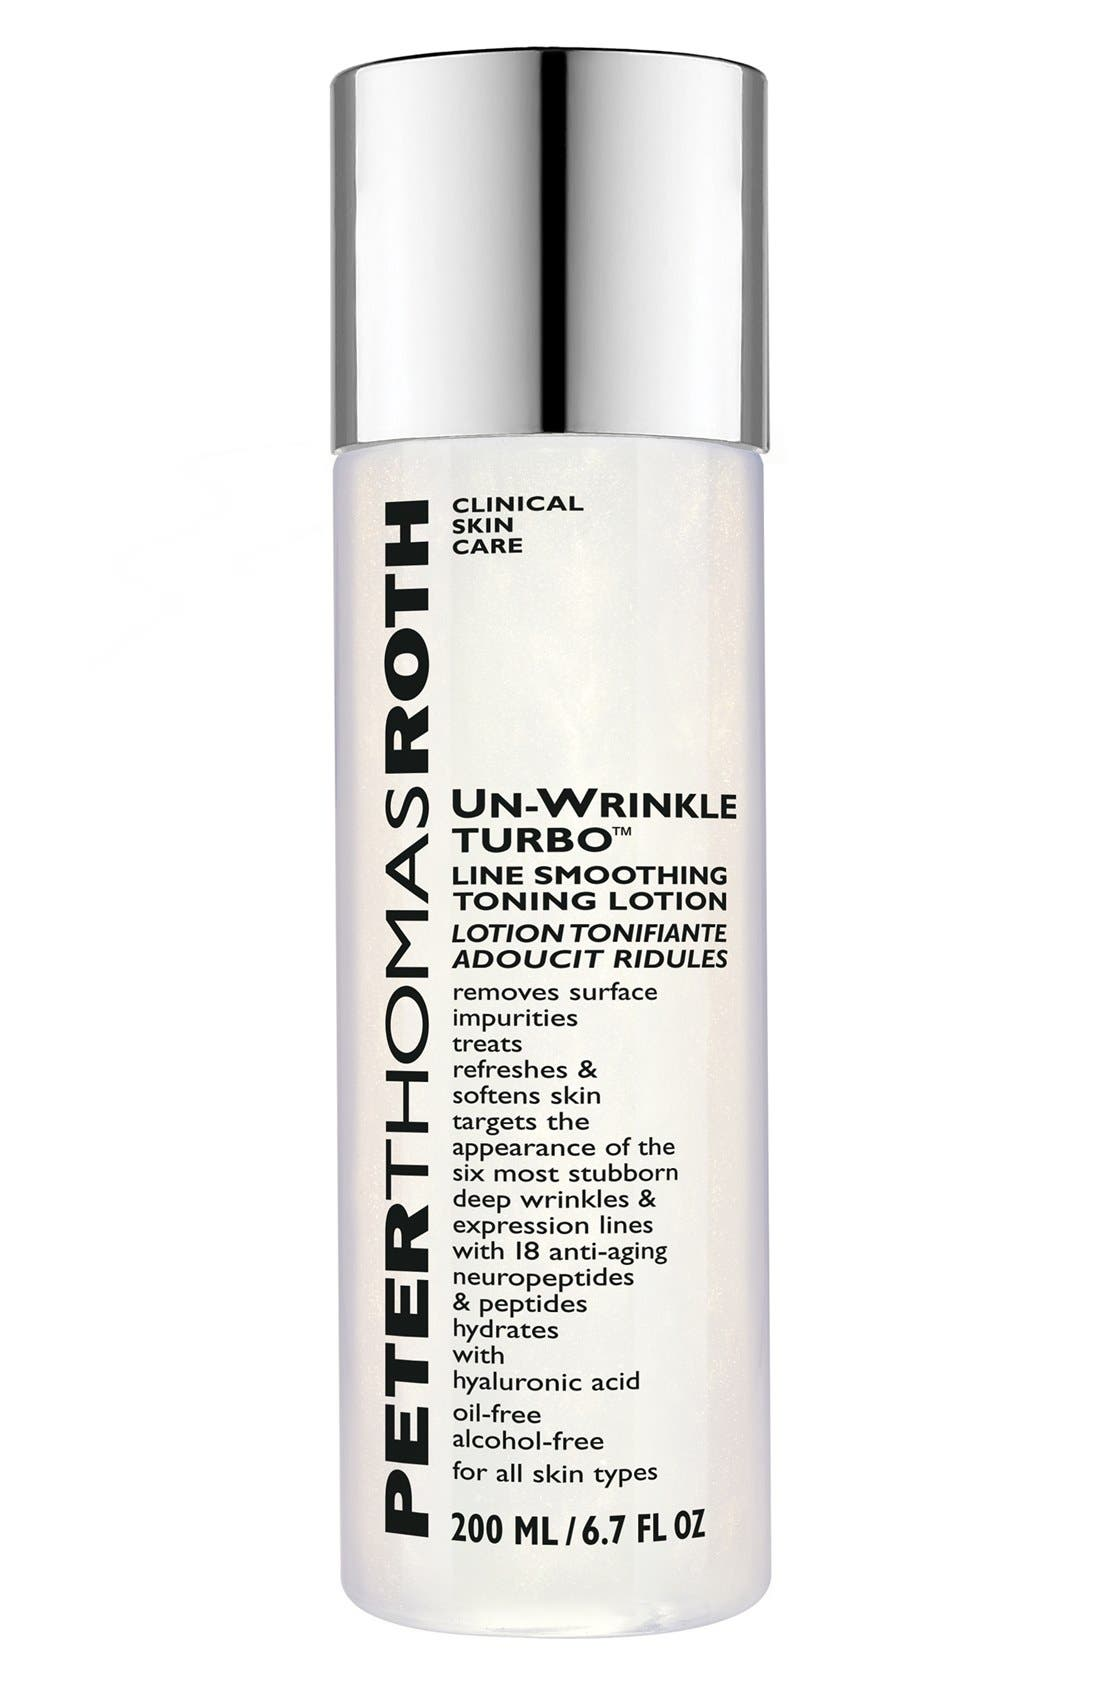 Peter Thomas Roth Un-Wrinkle Turbo™ Line Smoothing Toning Lotion